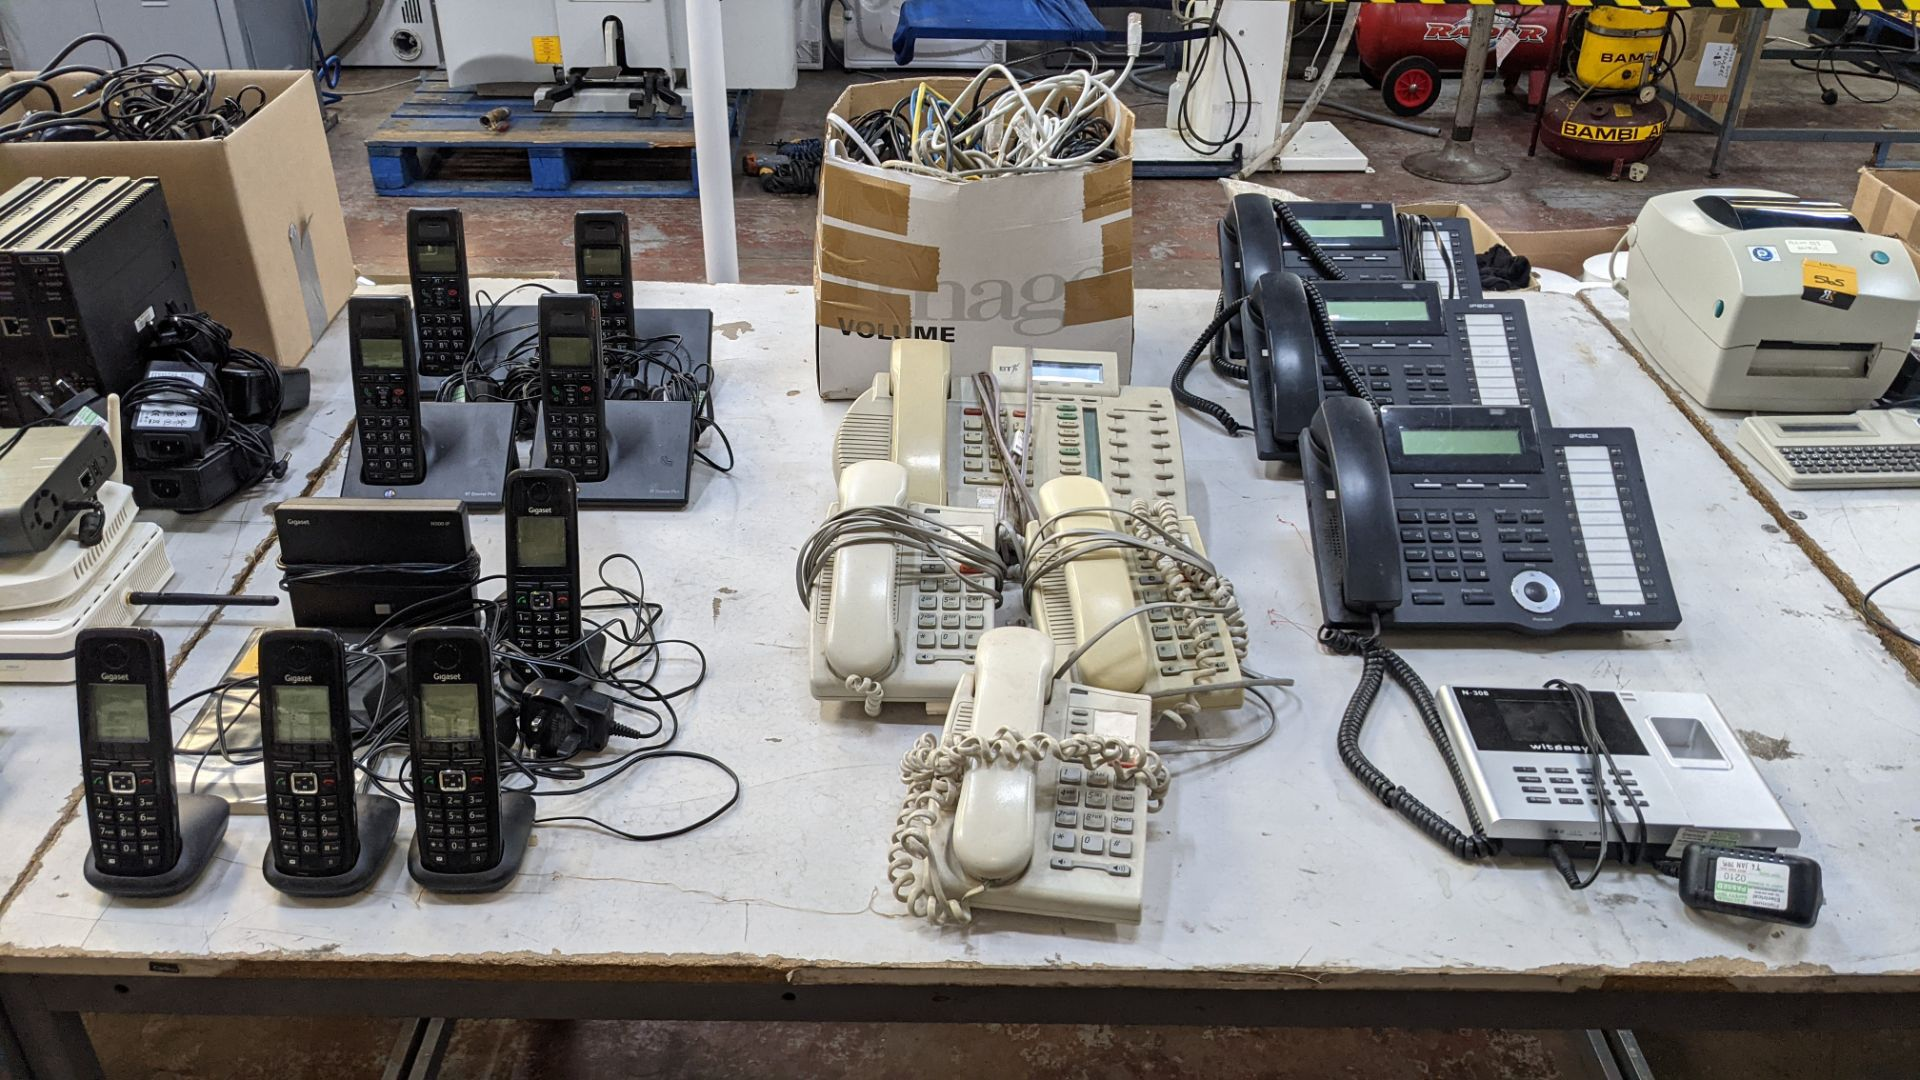 The contents of a table of telephone equipment comprising DECT cordless handsets & office phones - Image 2 of 8